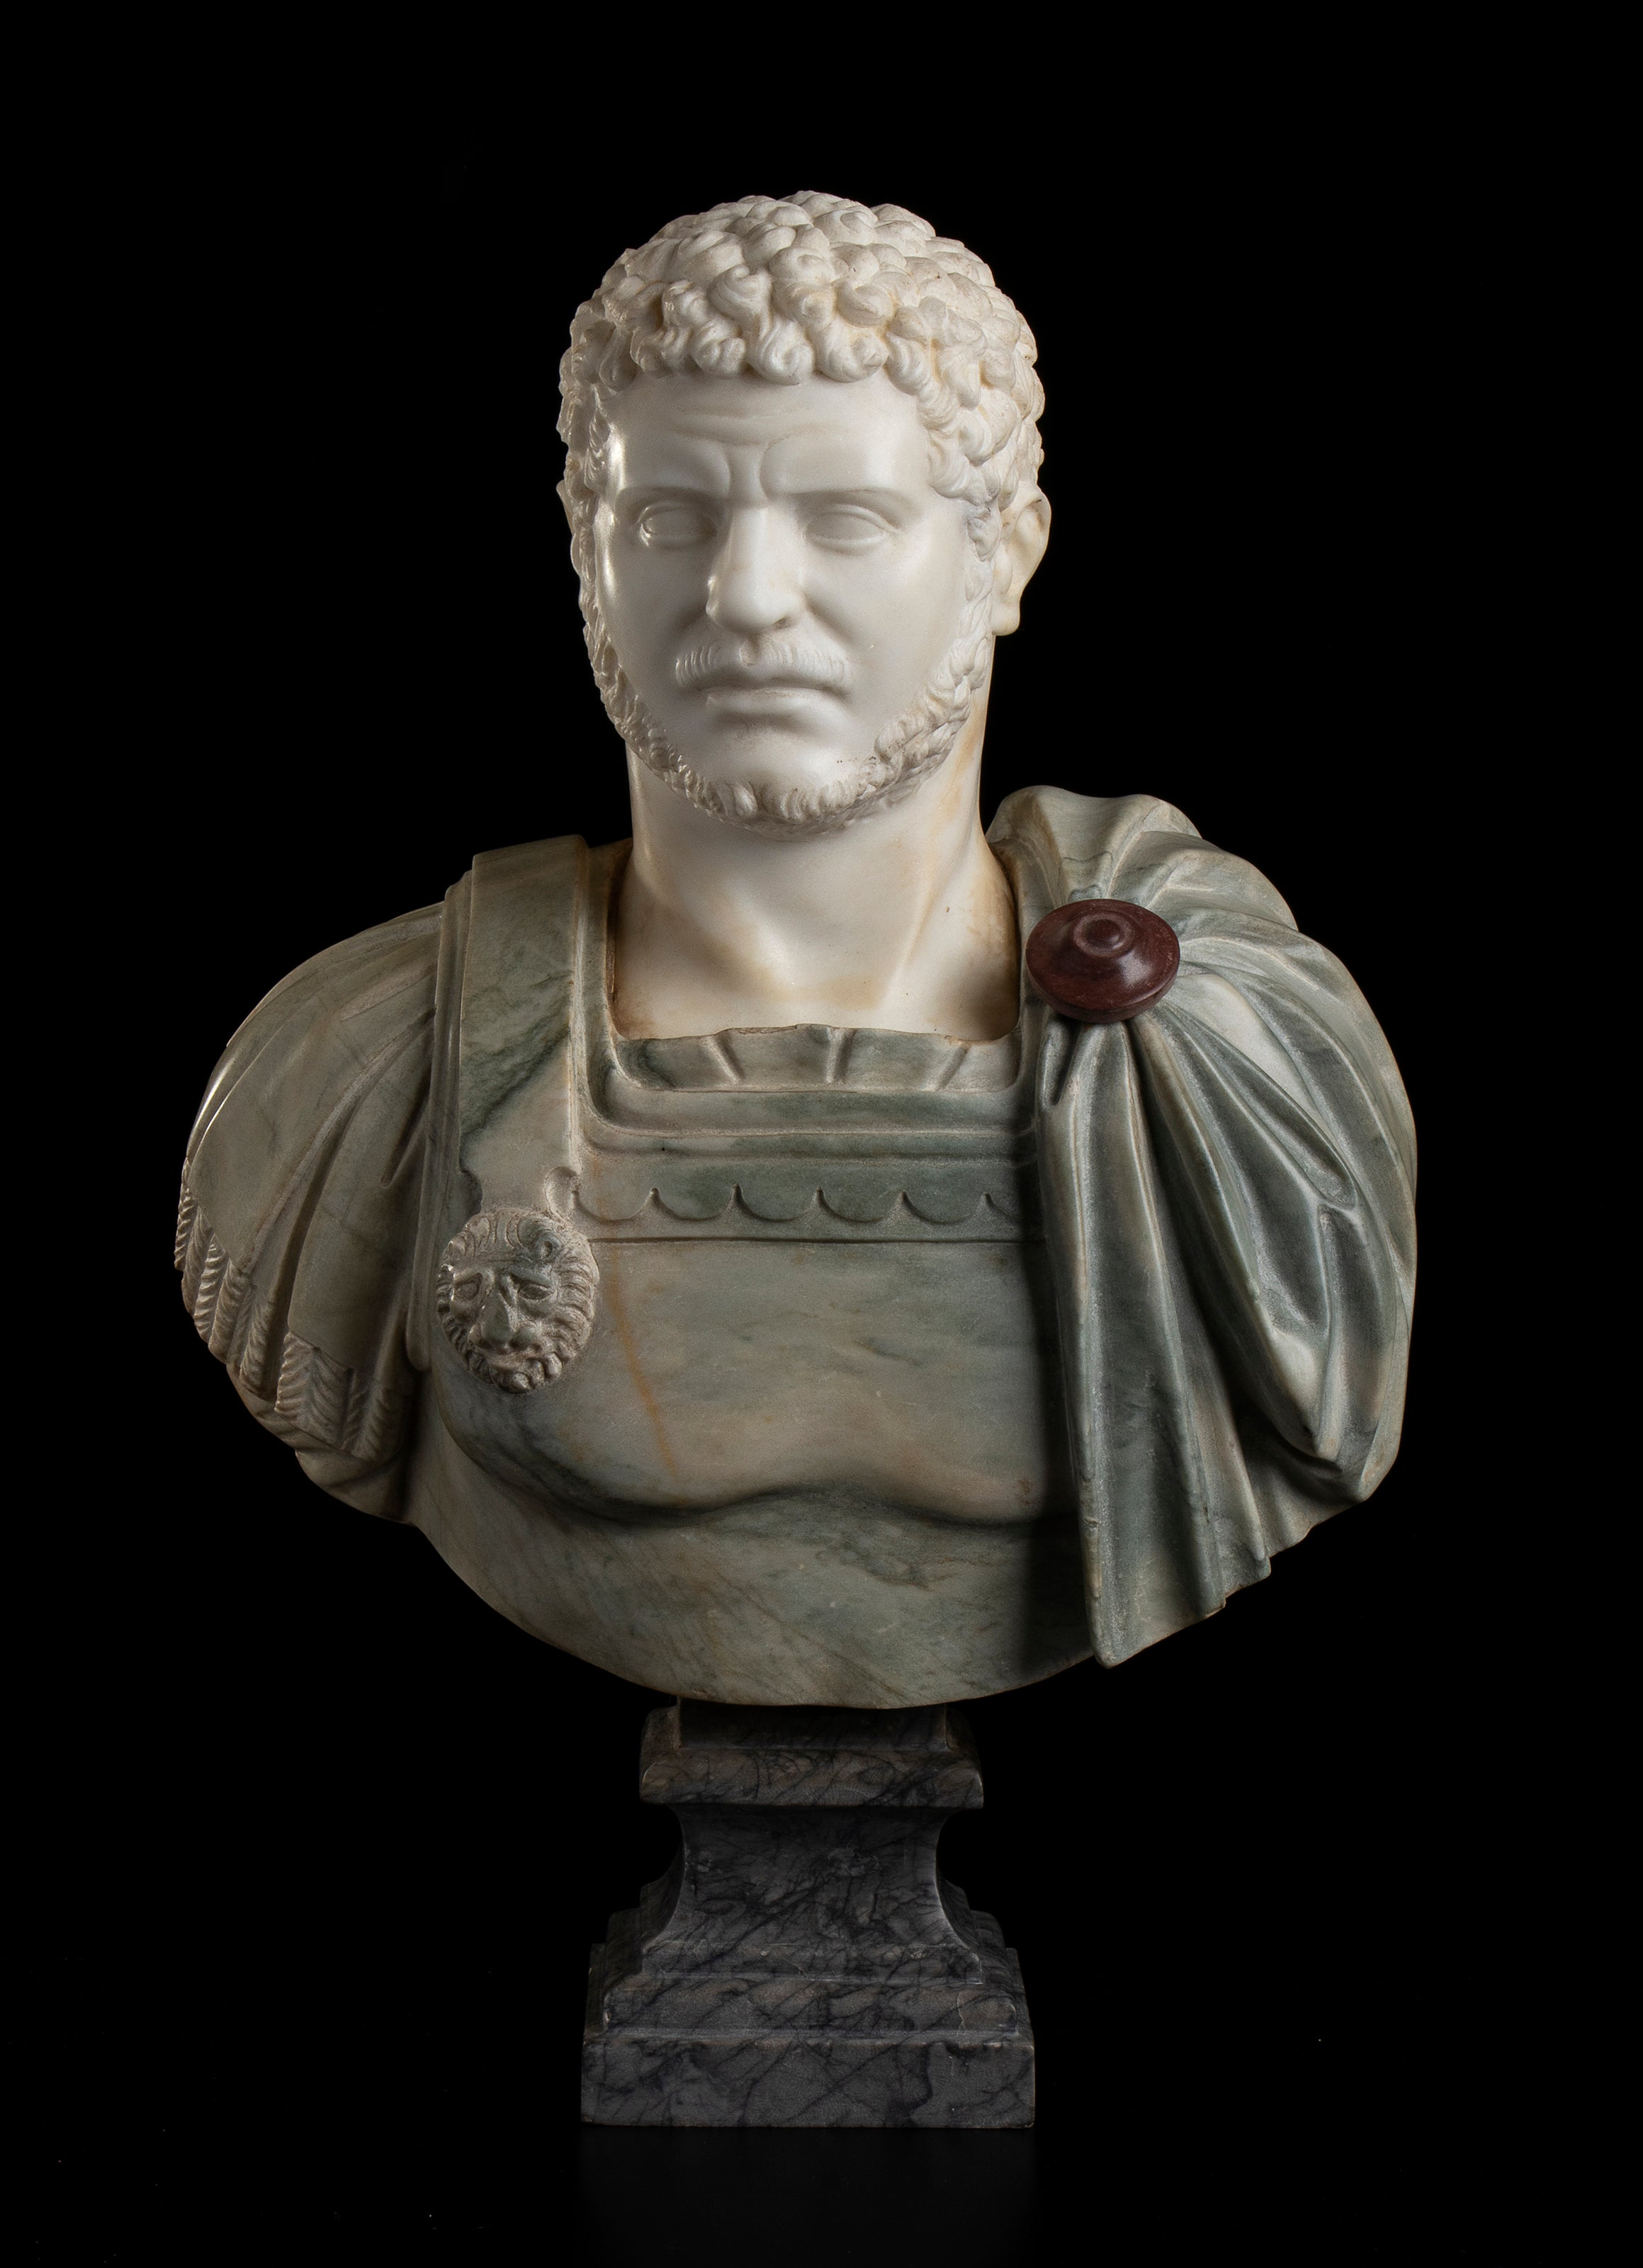 Sculpture Bust Roman Emperor White and Green Marble After the Antique Grand Tour